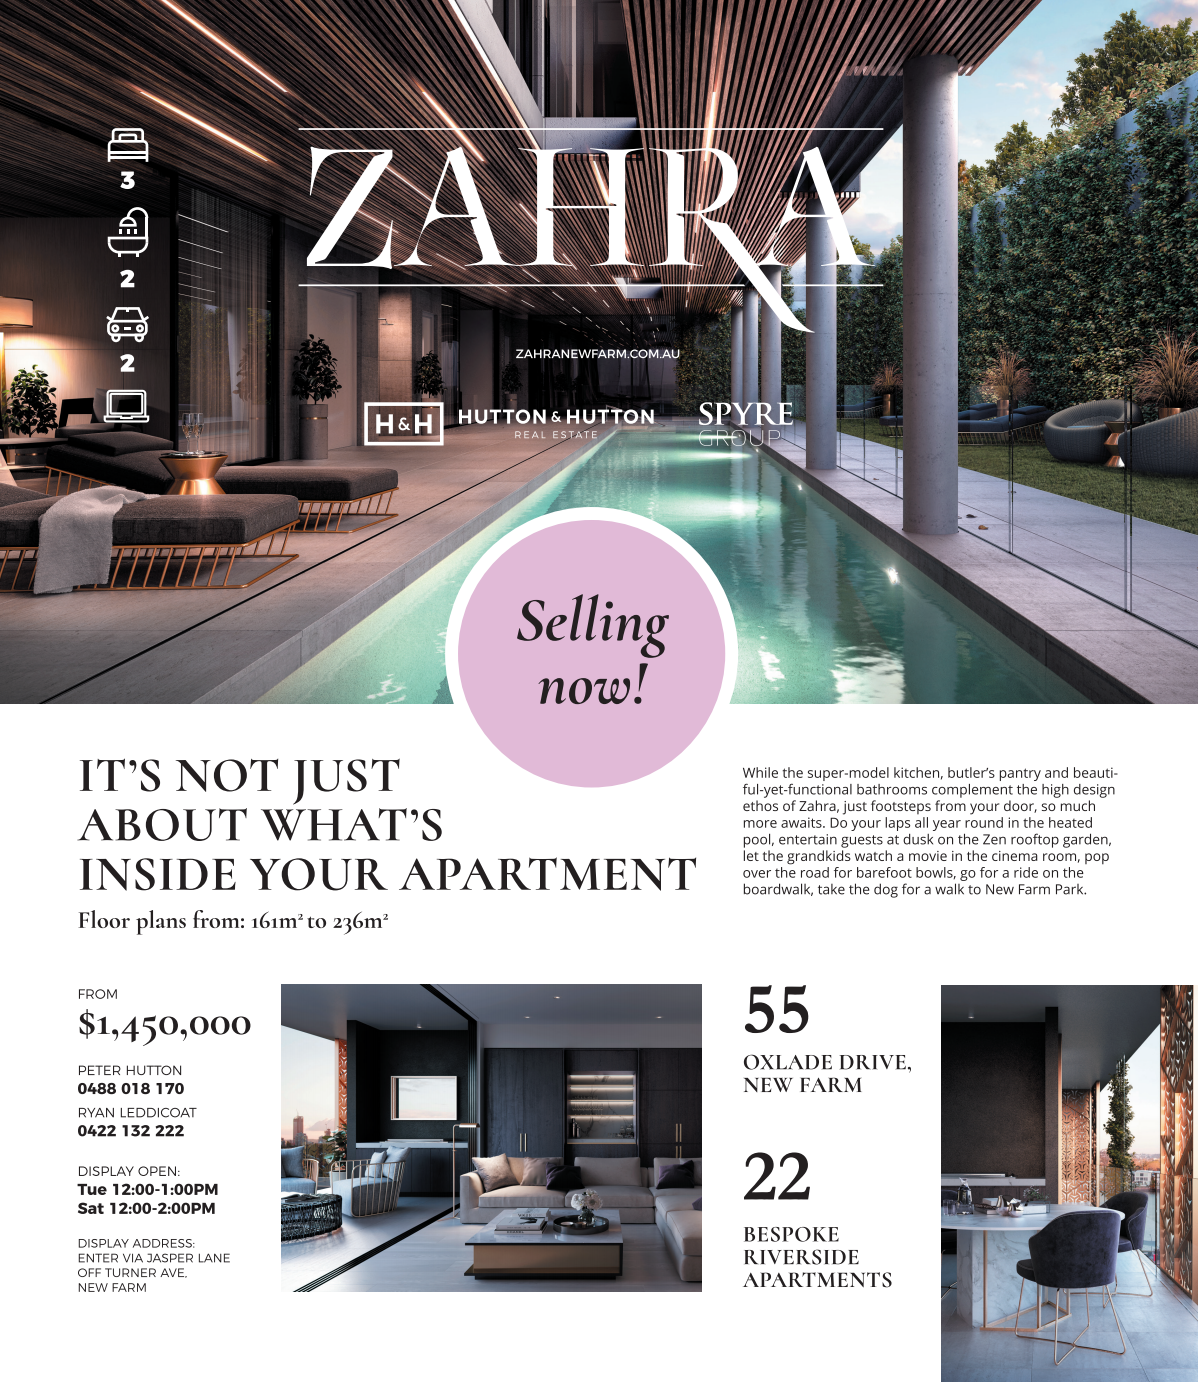 Zahra - Village News Magazine Print Ad - Full Page